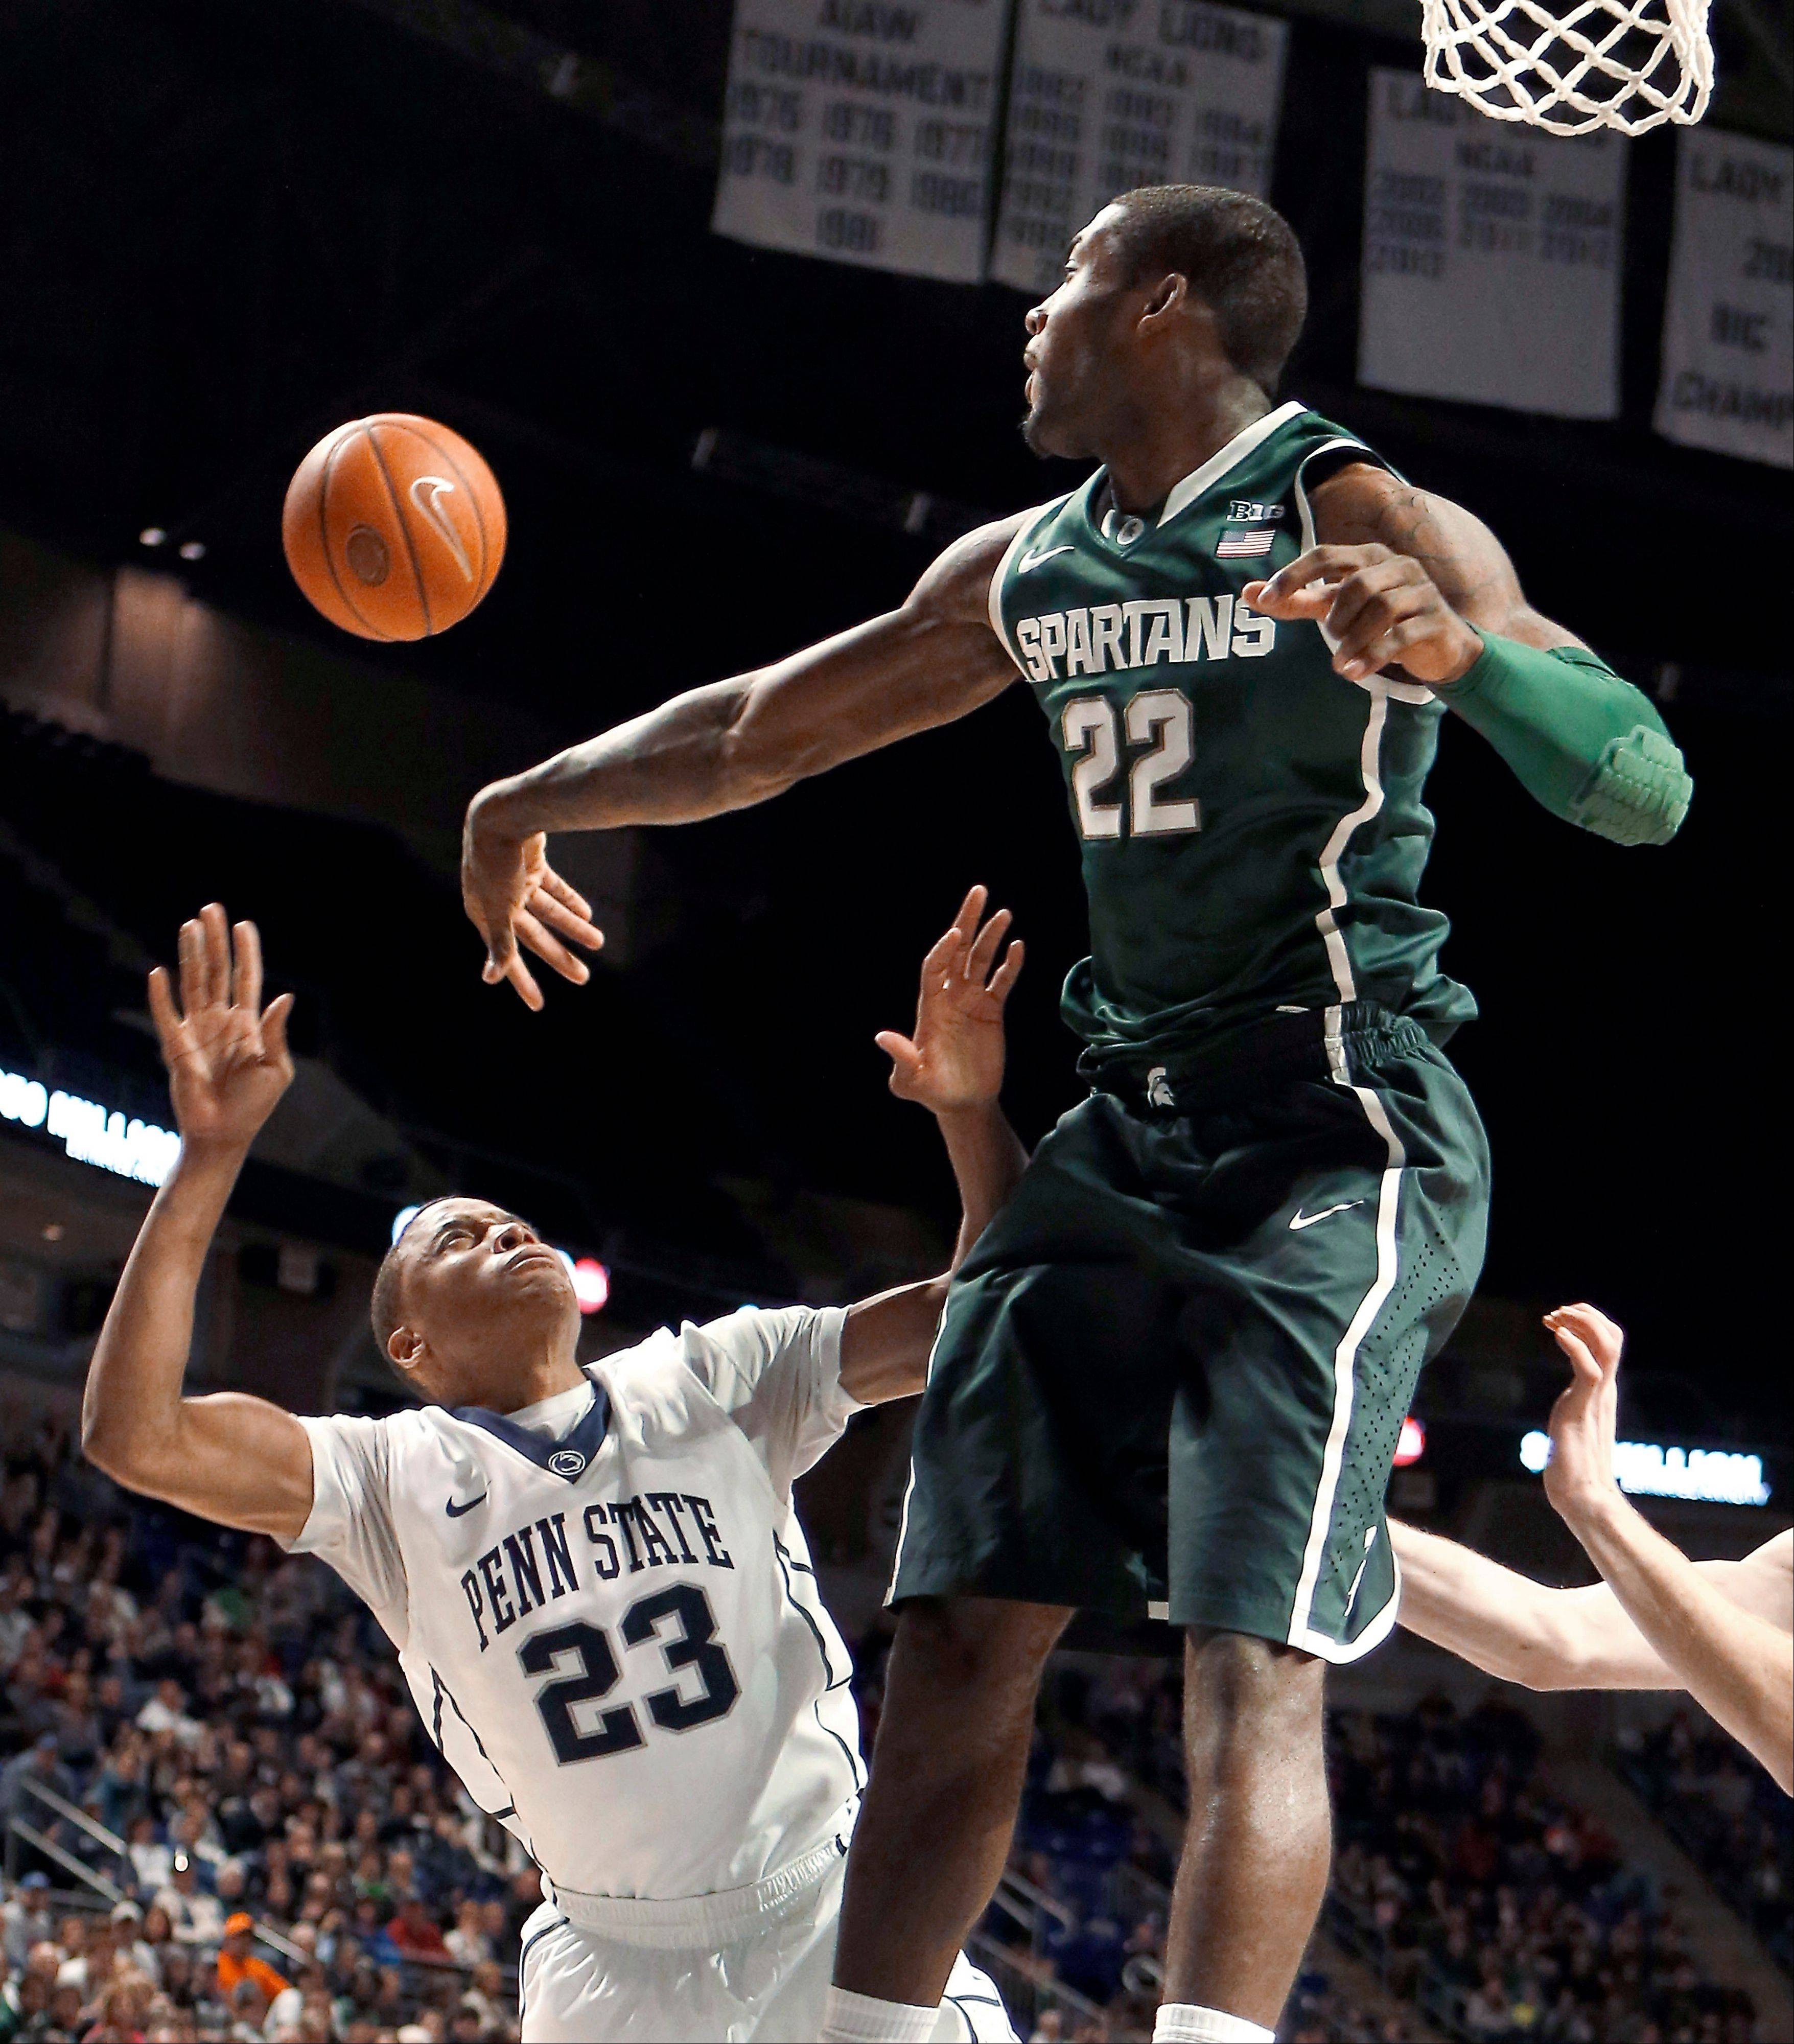 Michigan State's Branden Dawson blocks a shot by Penn State's Tim Frazier during the second half of Tuesday's game in State College, Pa.